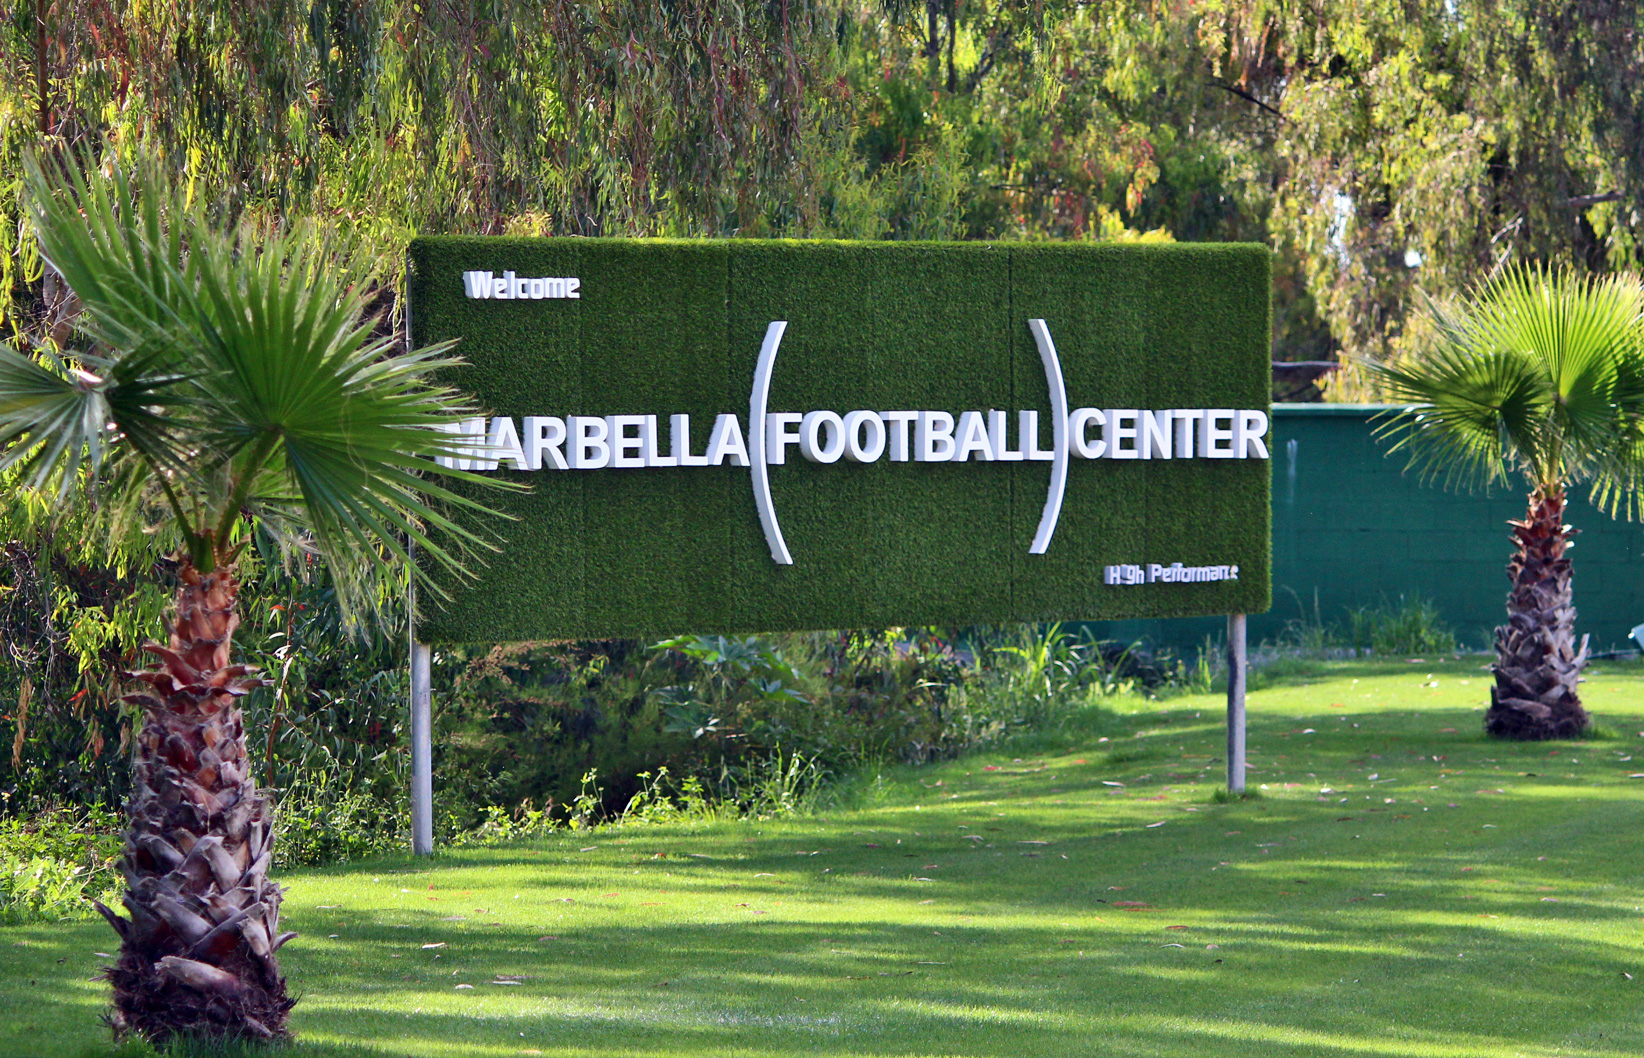 MARBELLA FOOTBALL CENTER IS A HPC (HIGH PERFORMANCE CENTRE)